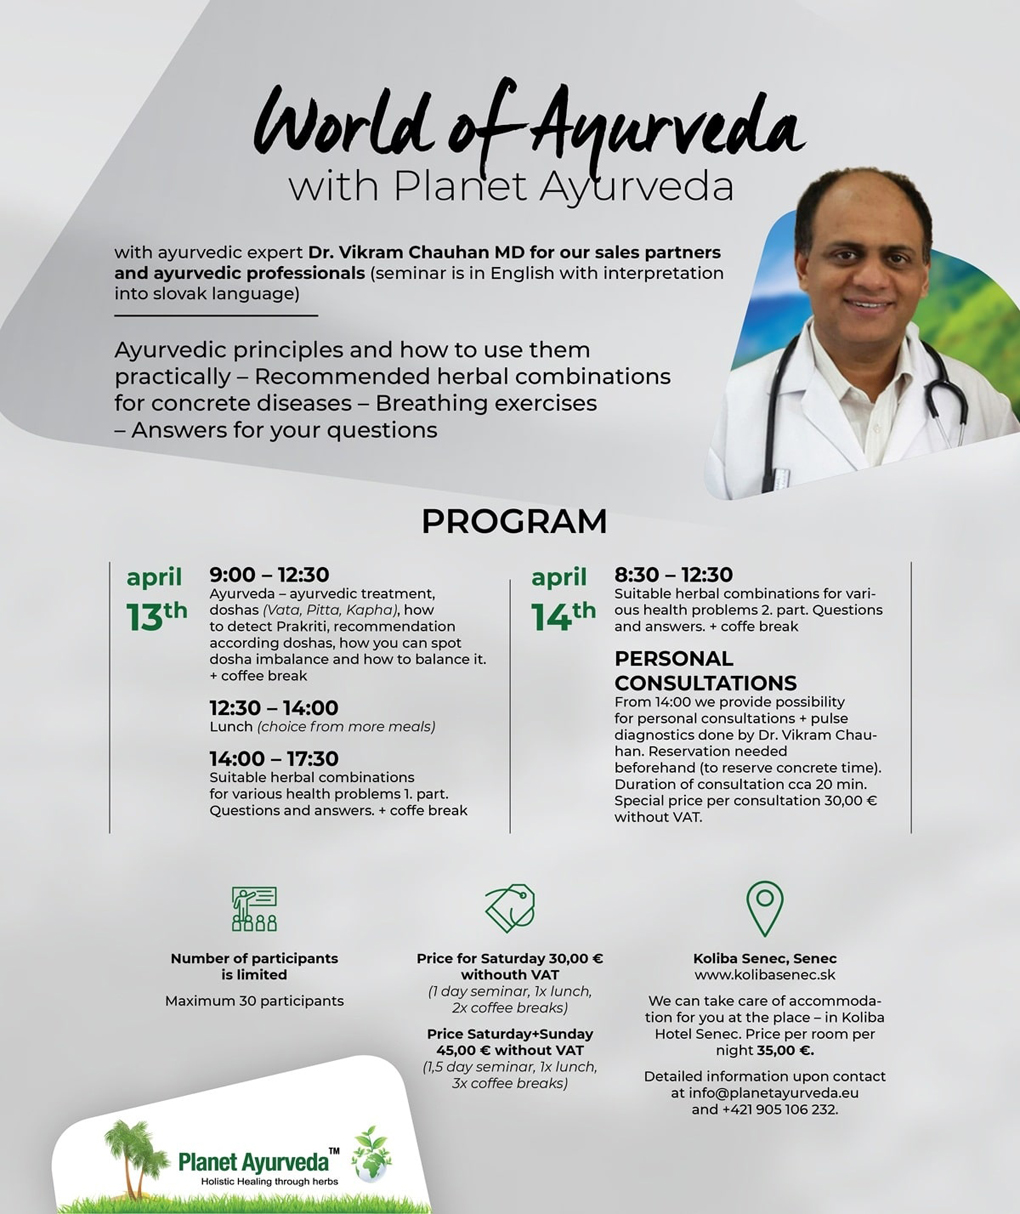 World of Ayurveda with Planet Ayurveda, Ayurvedic Seminar in Slovakia